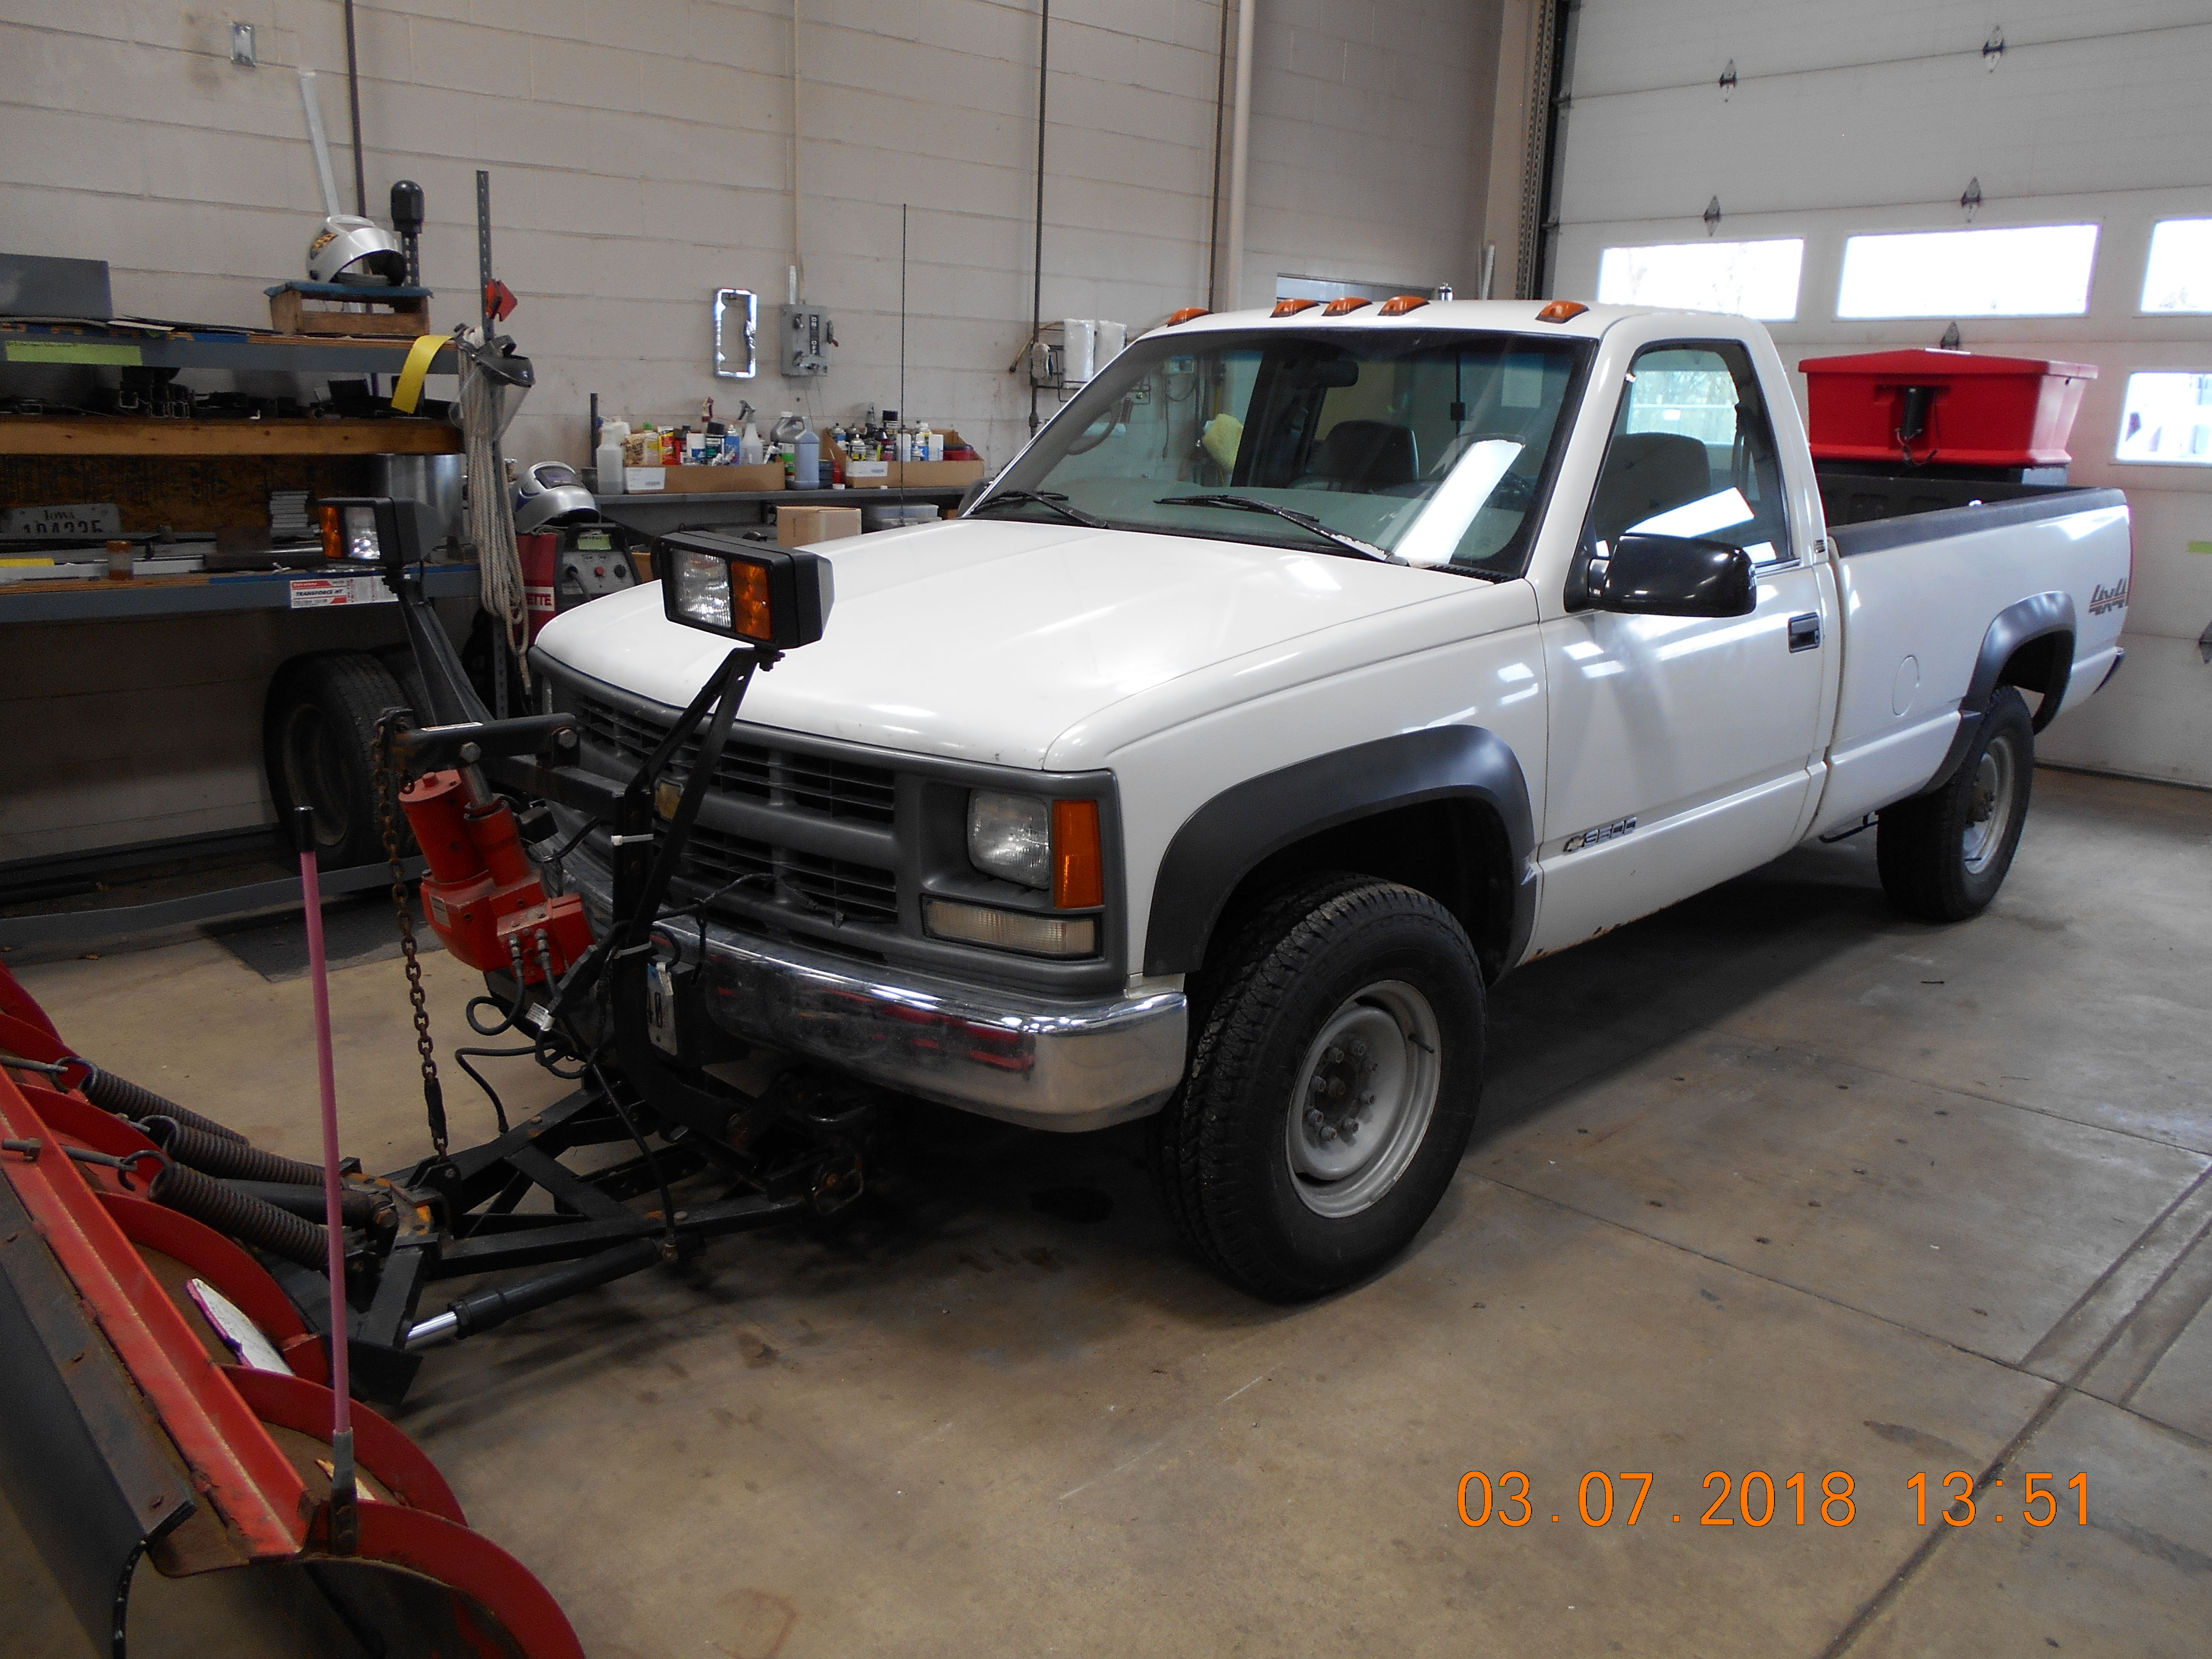 1997 Chevrolet 4X4 truck with plow/spreader and air compressor image 1